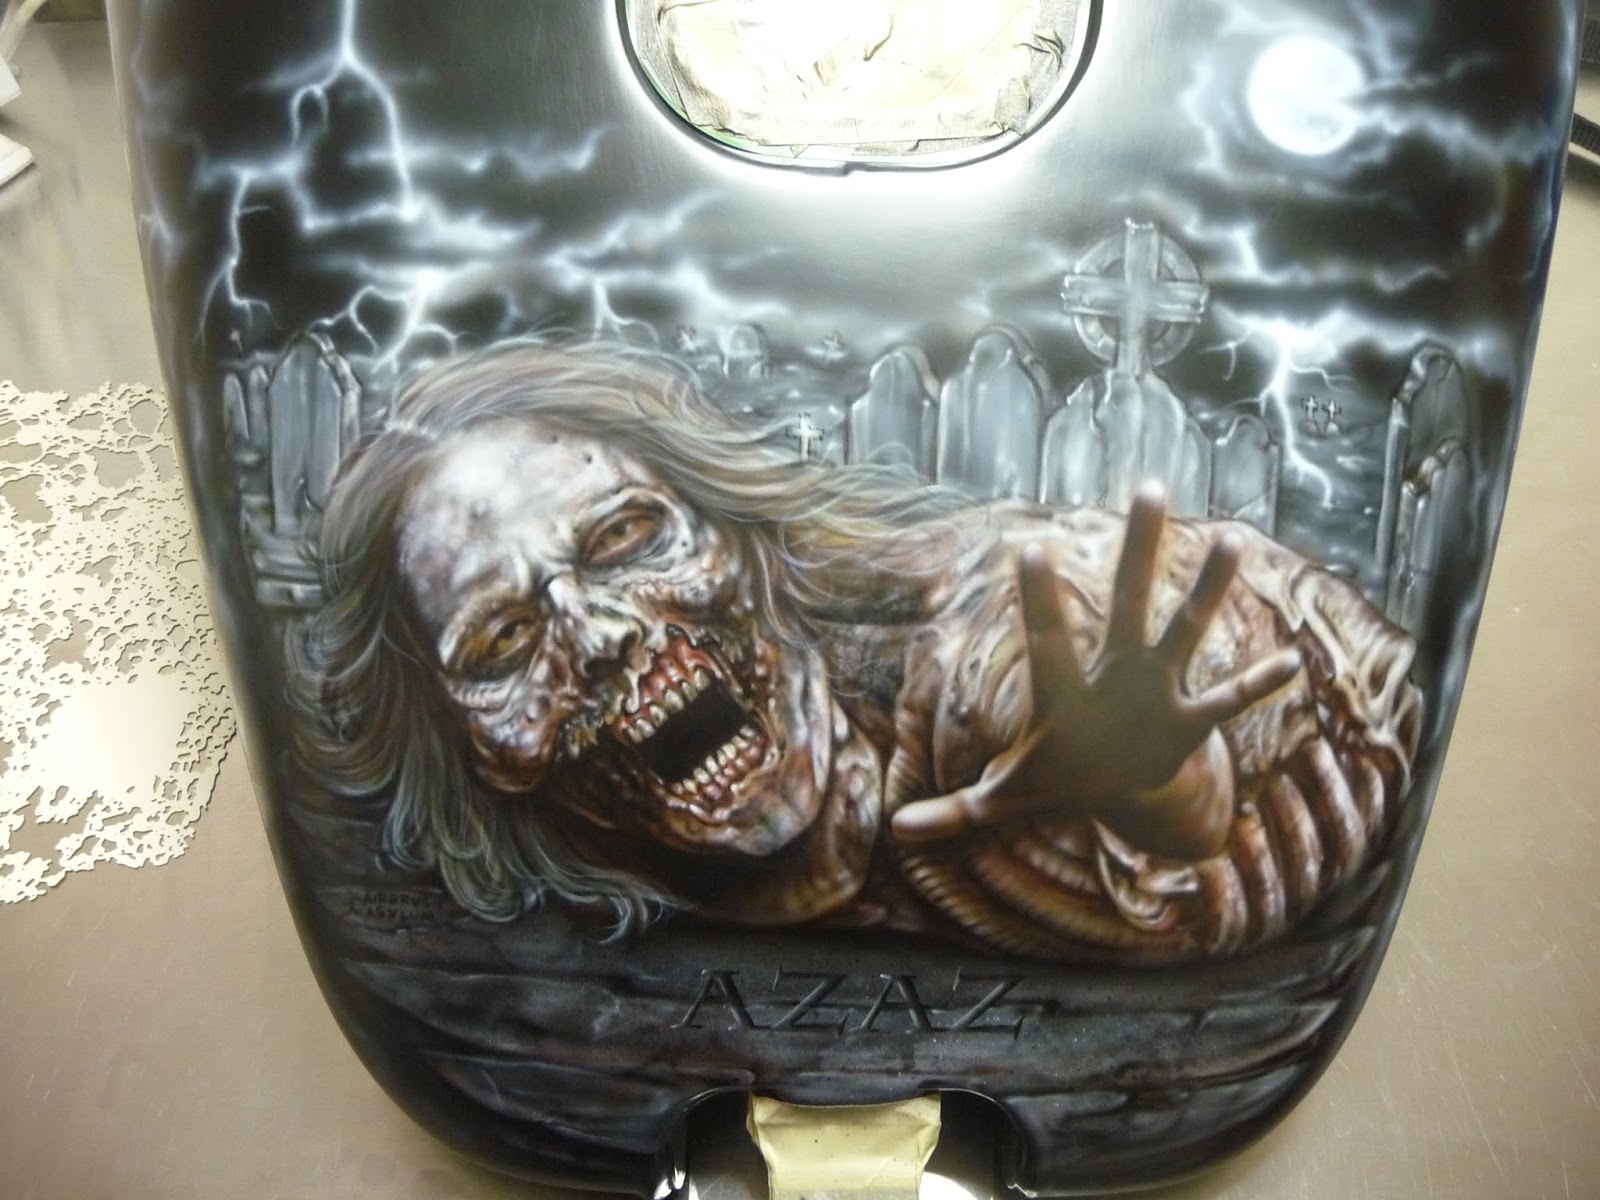 Airbrush asylum zombie harley airbrushed murals for Airbrushed mural